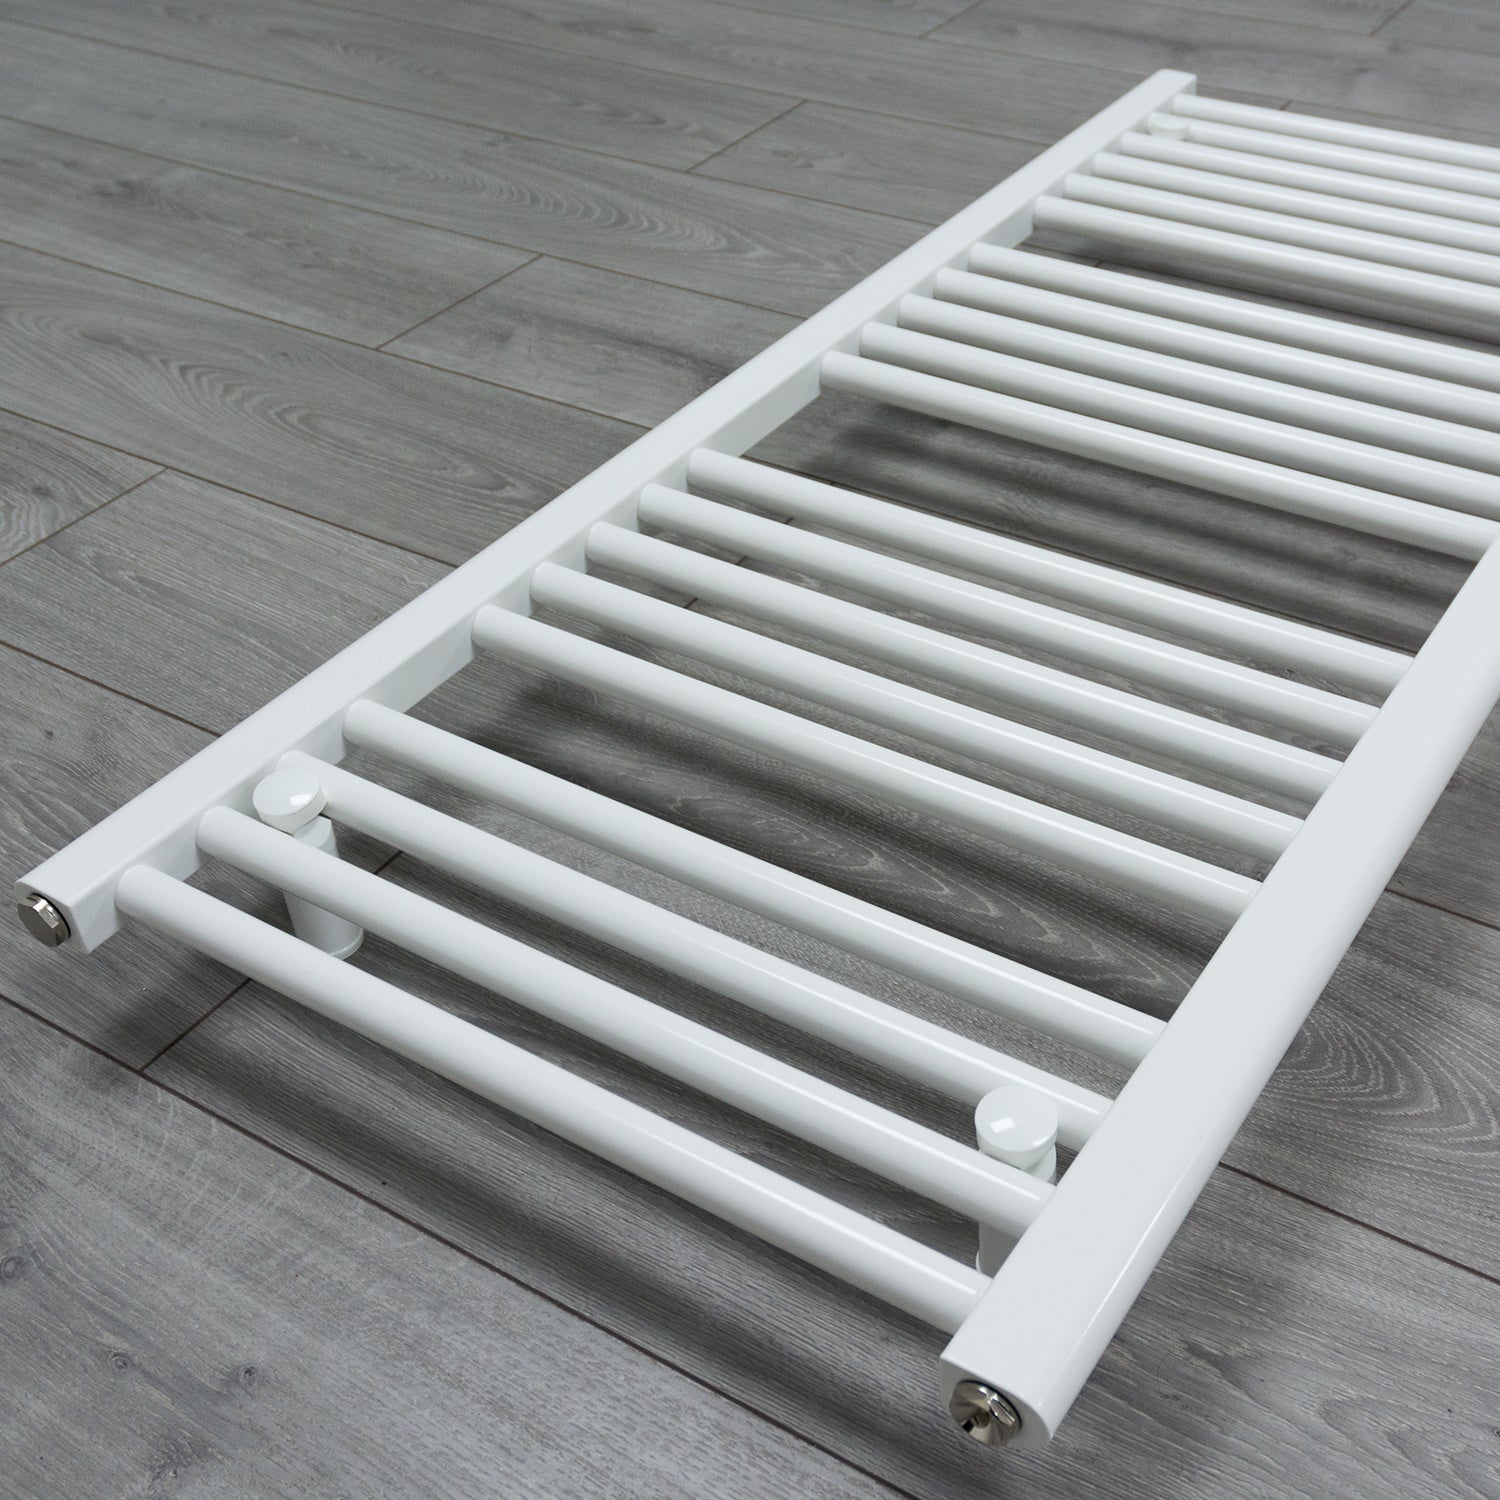 600mm x 1100mm White Heated Towel Rail Radiator Close Up Image